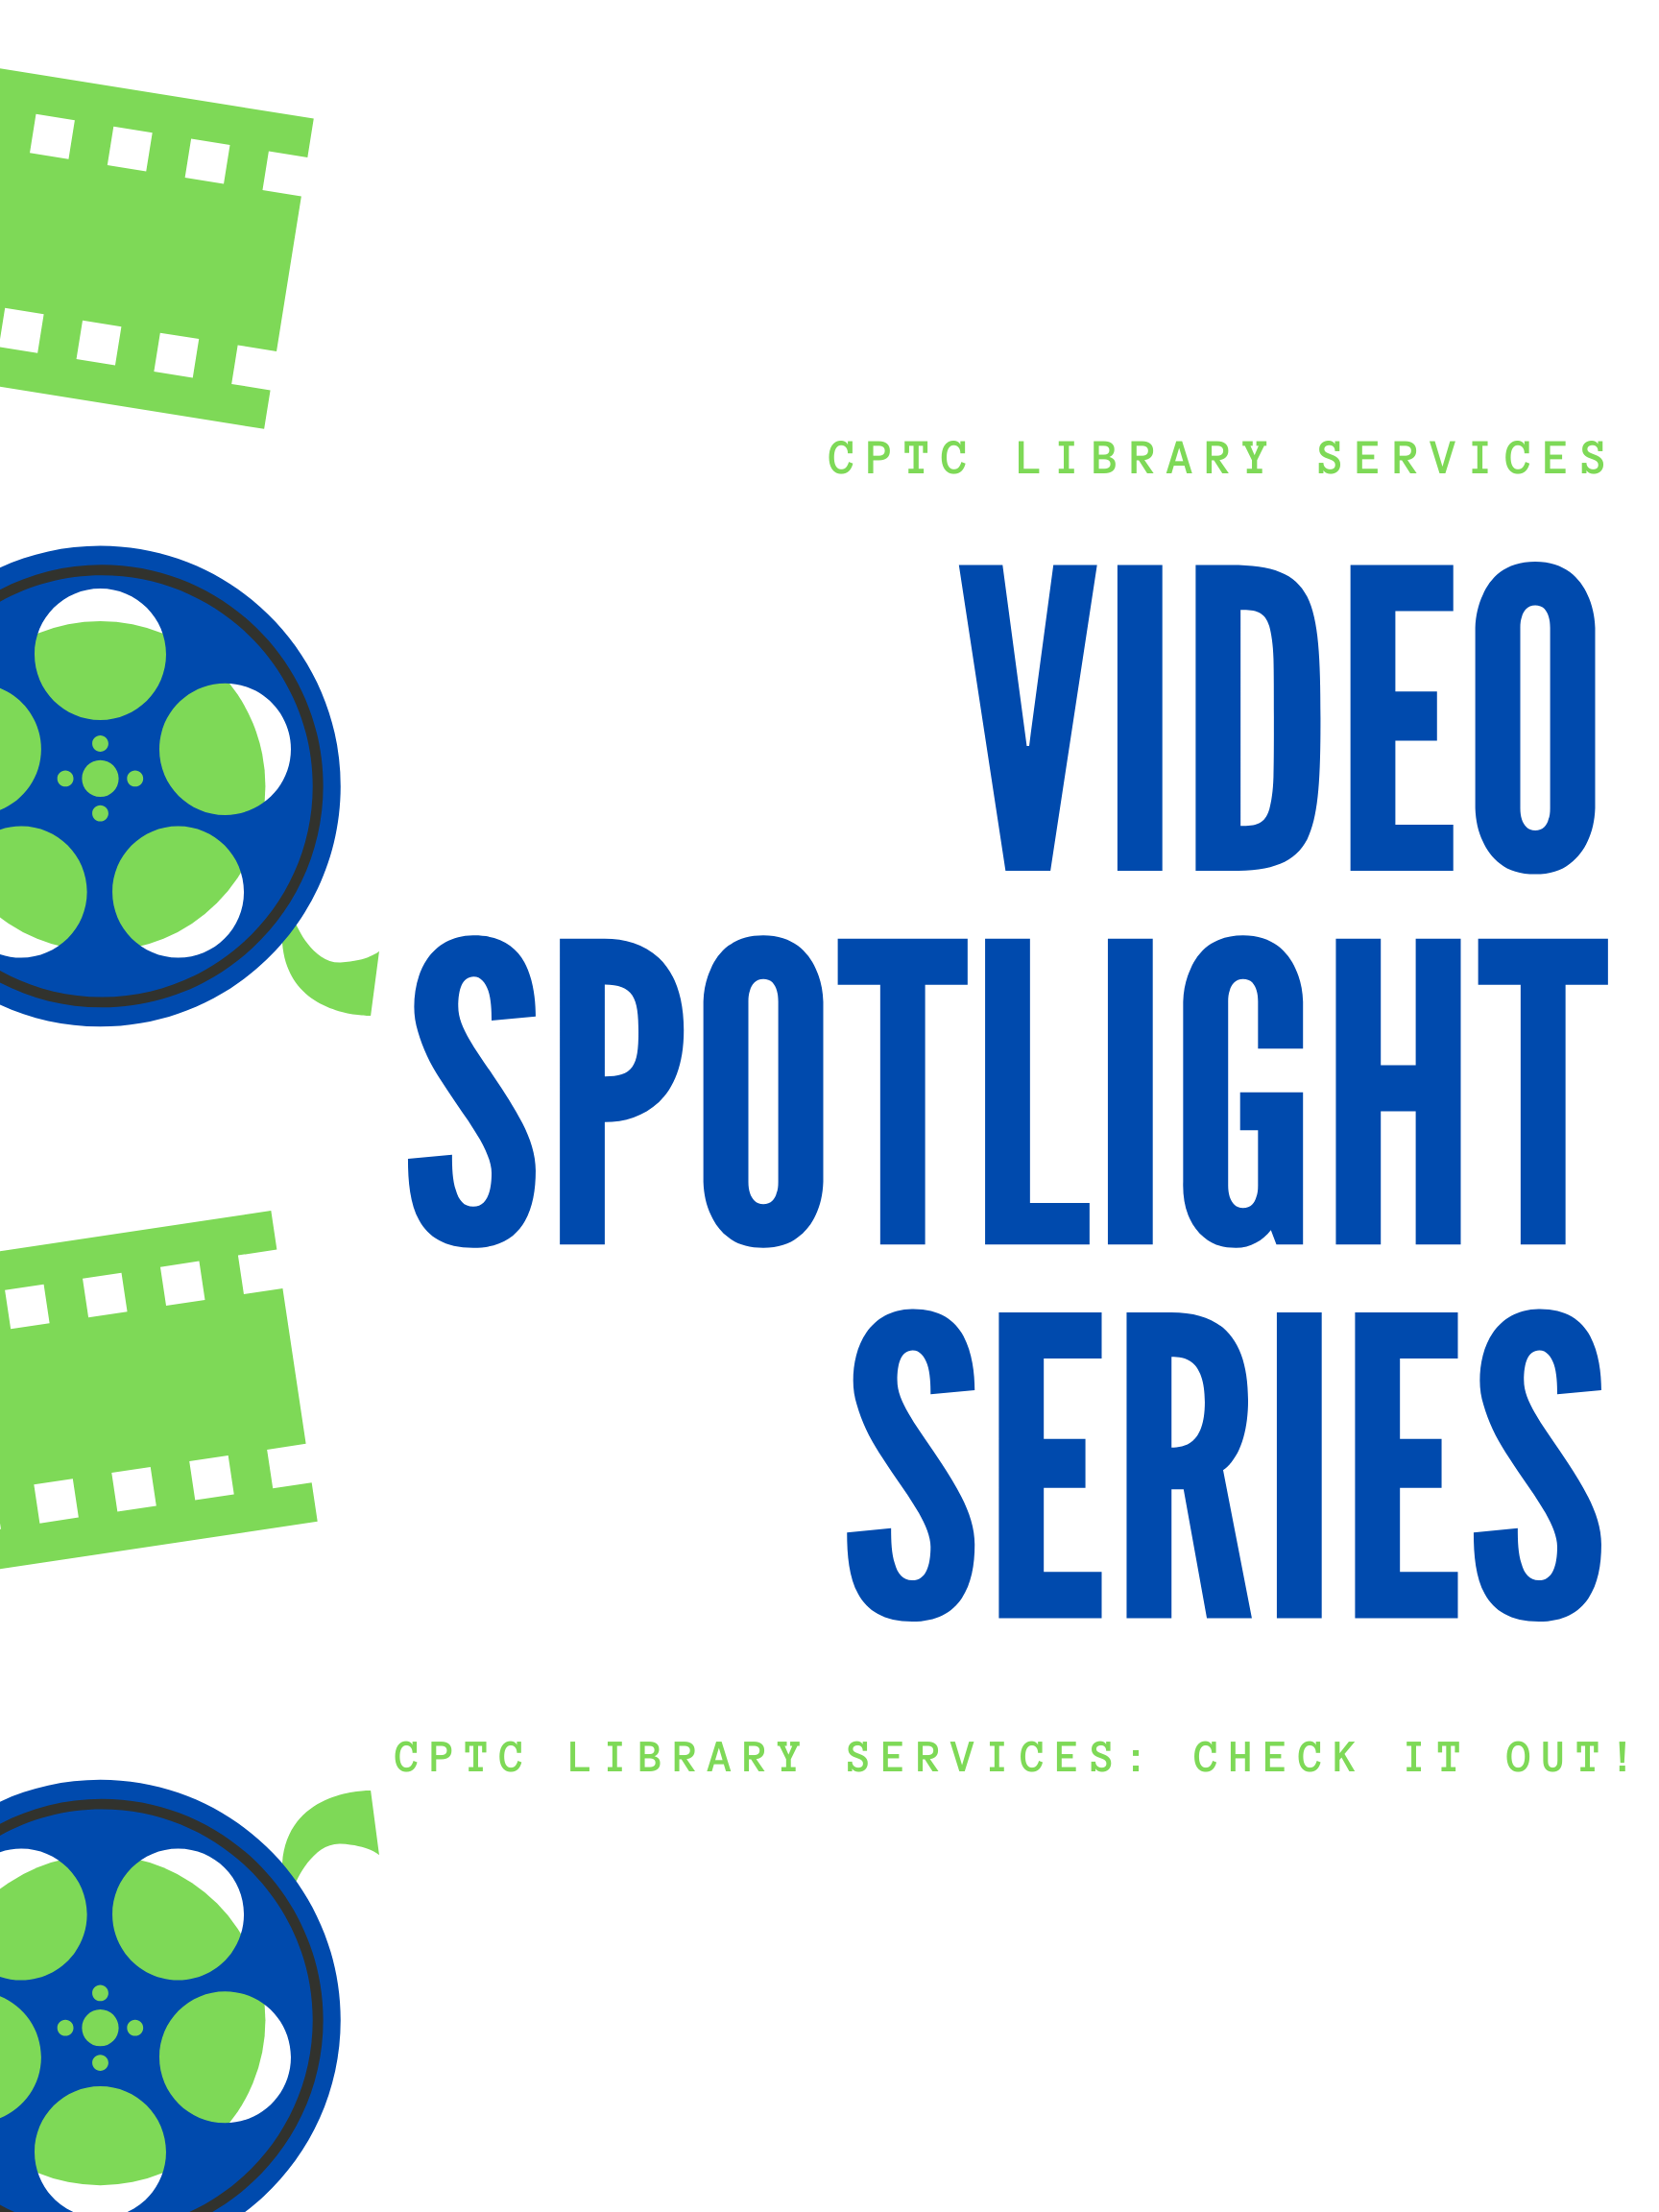 """White poster with blue and green film strips and film reels. States """"CPTC Library Services. Video Spotlight Series. CPTC Library Services: Check it out!"""""""